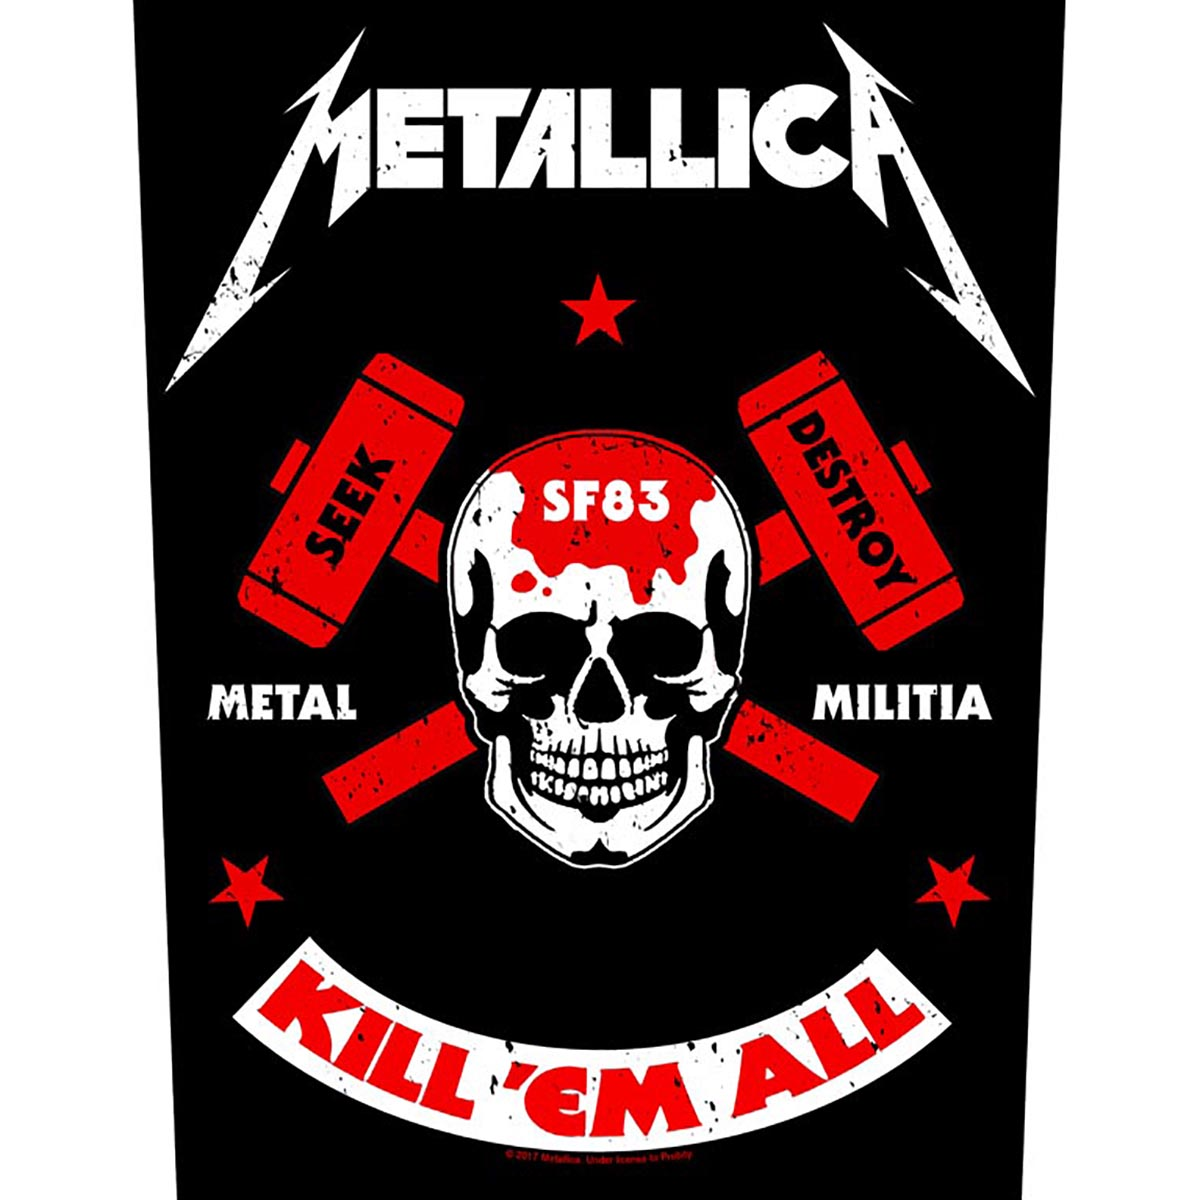 Metal Militia – Back Patch - Metallica